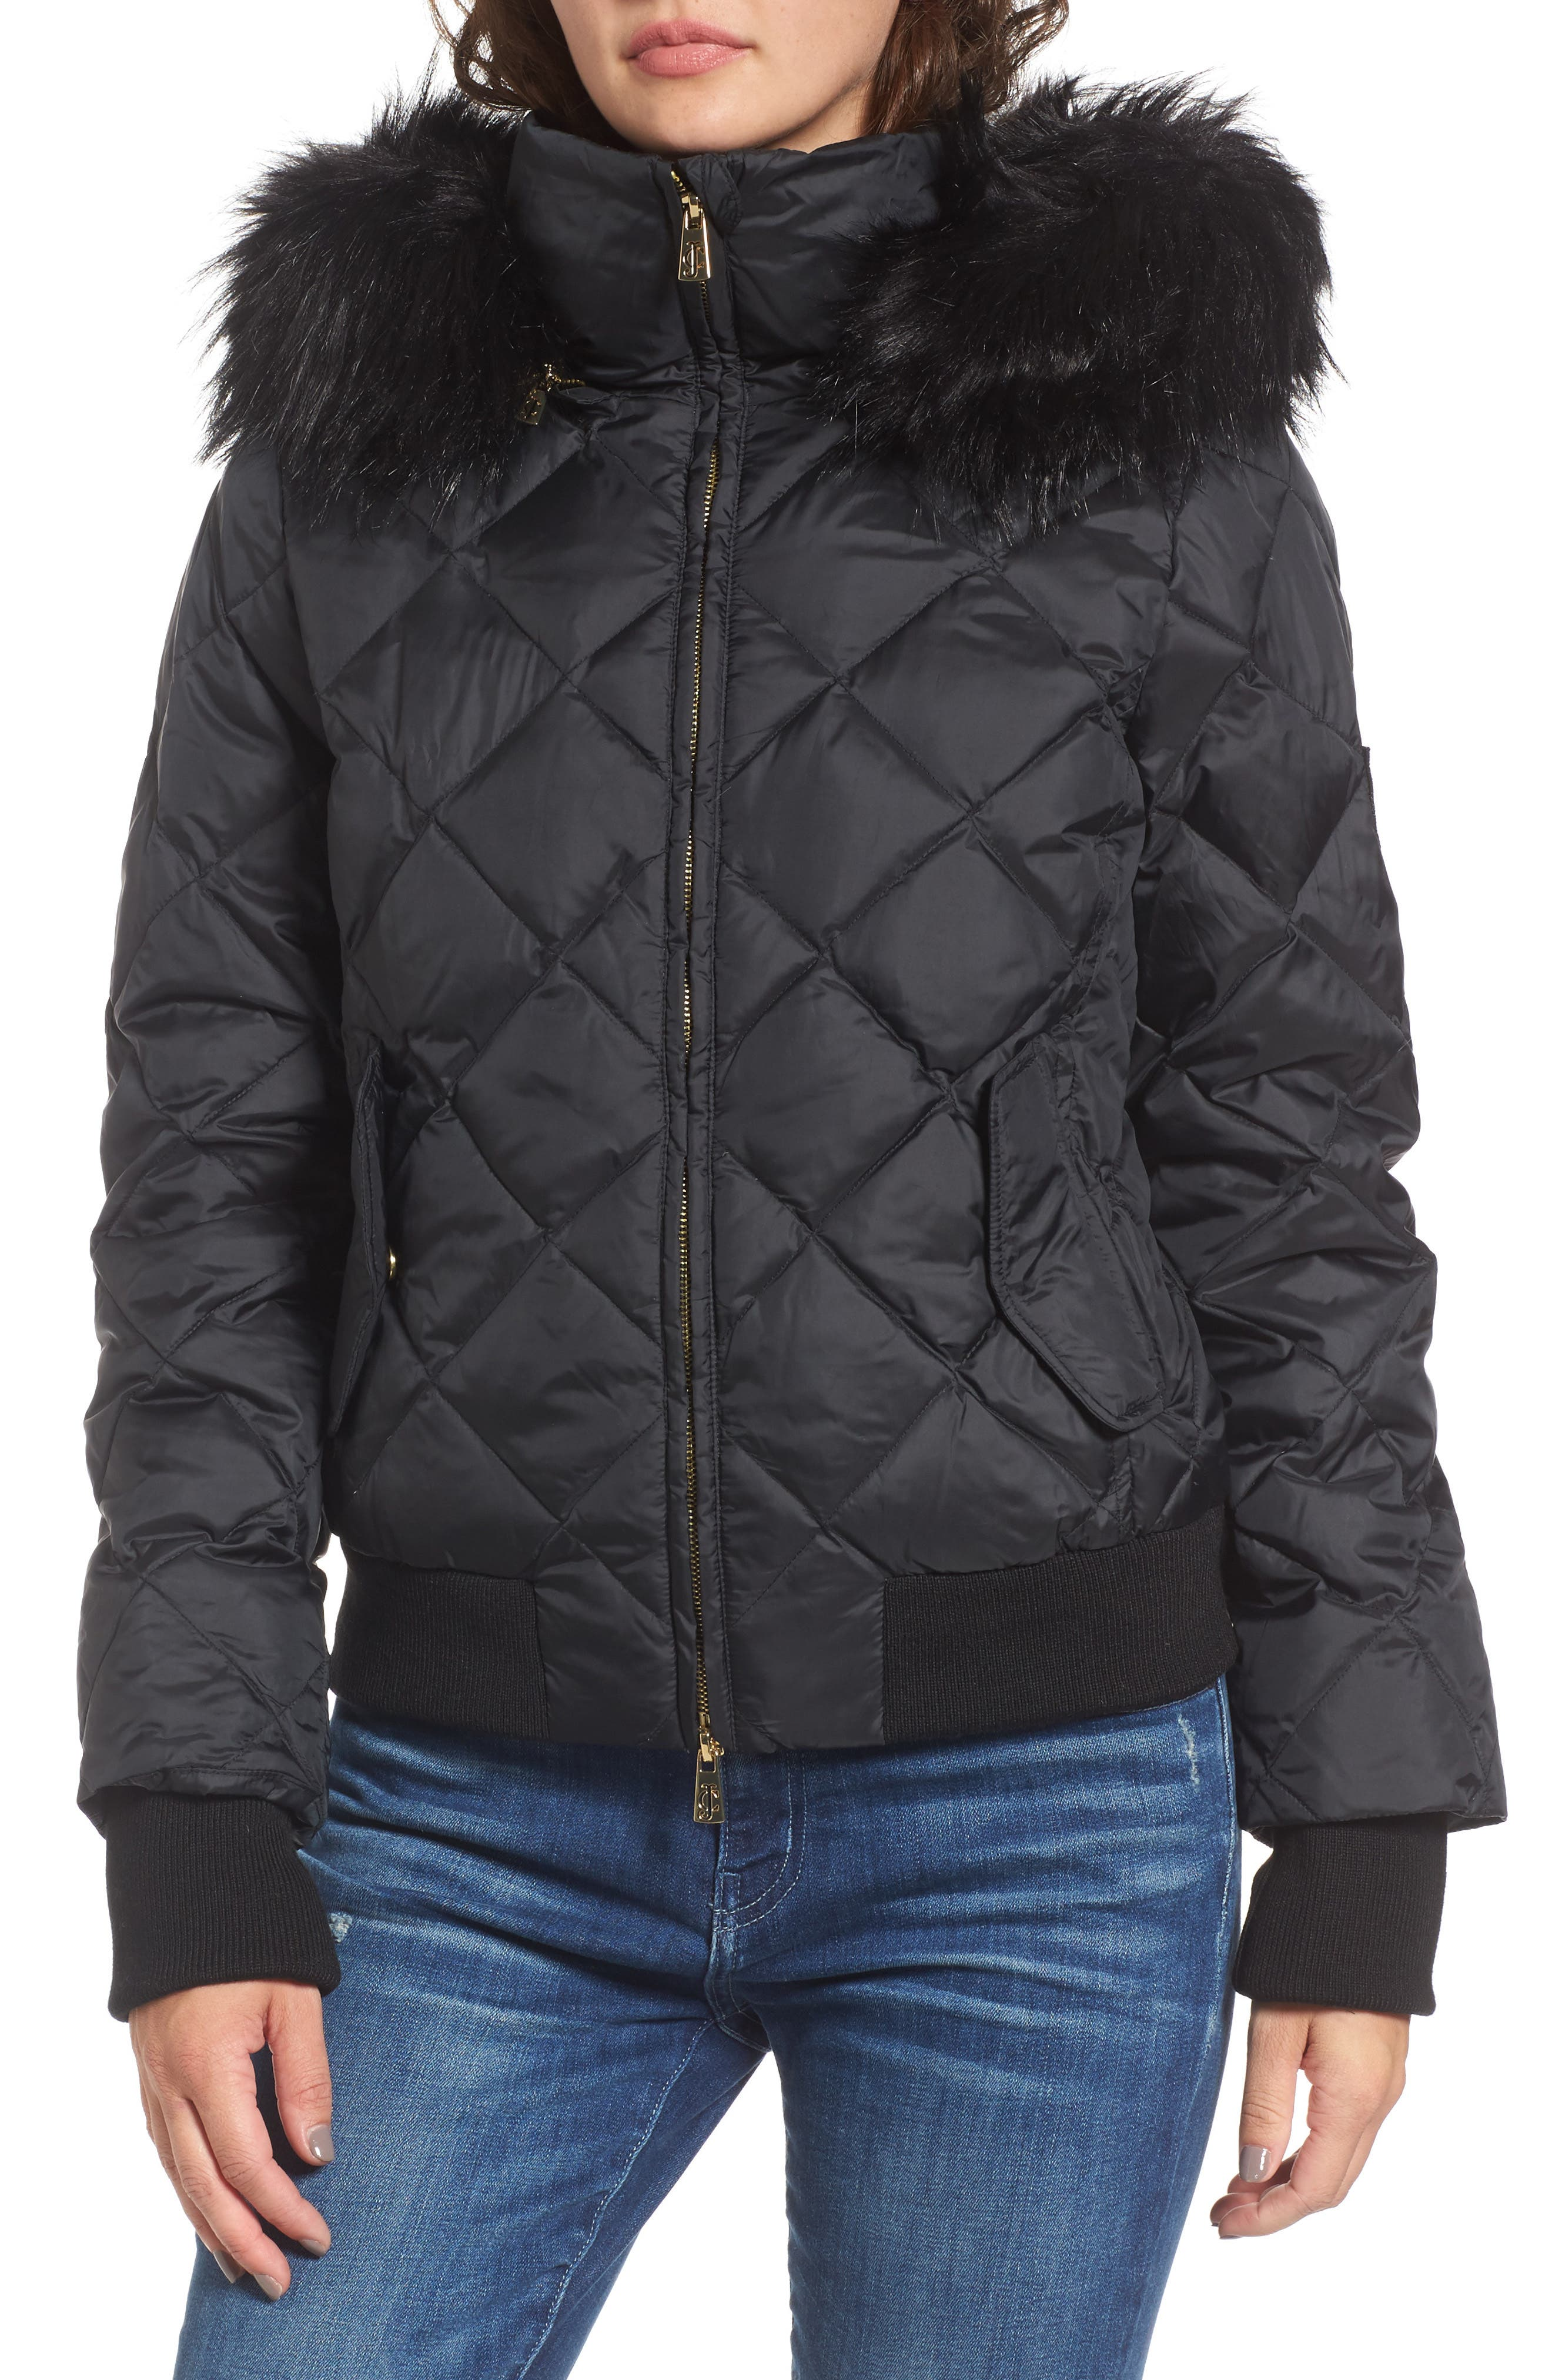 Alternate Image 4  - Juicy Couture Hooded Puffer Jacket with Faux Fur Trim